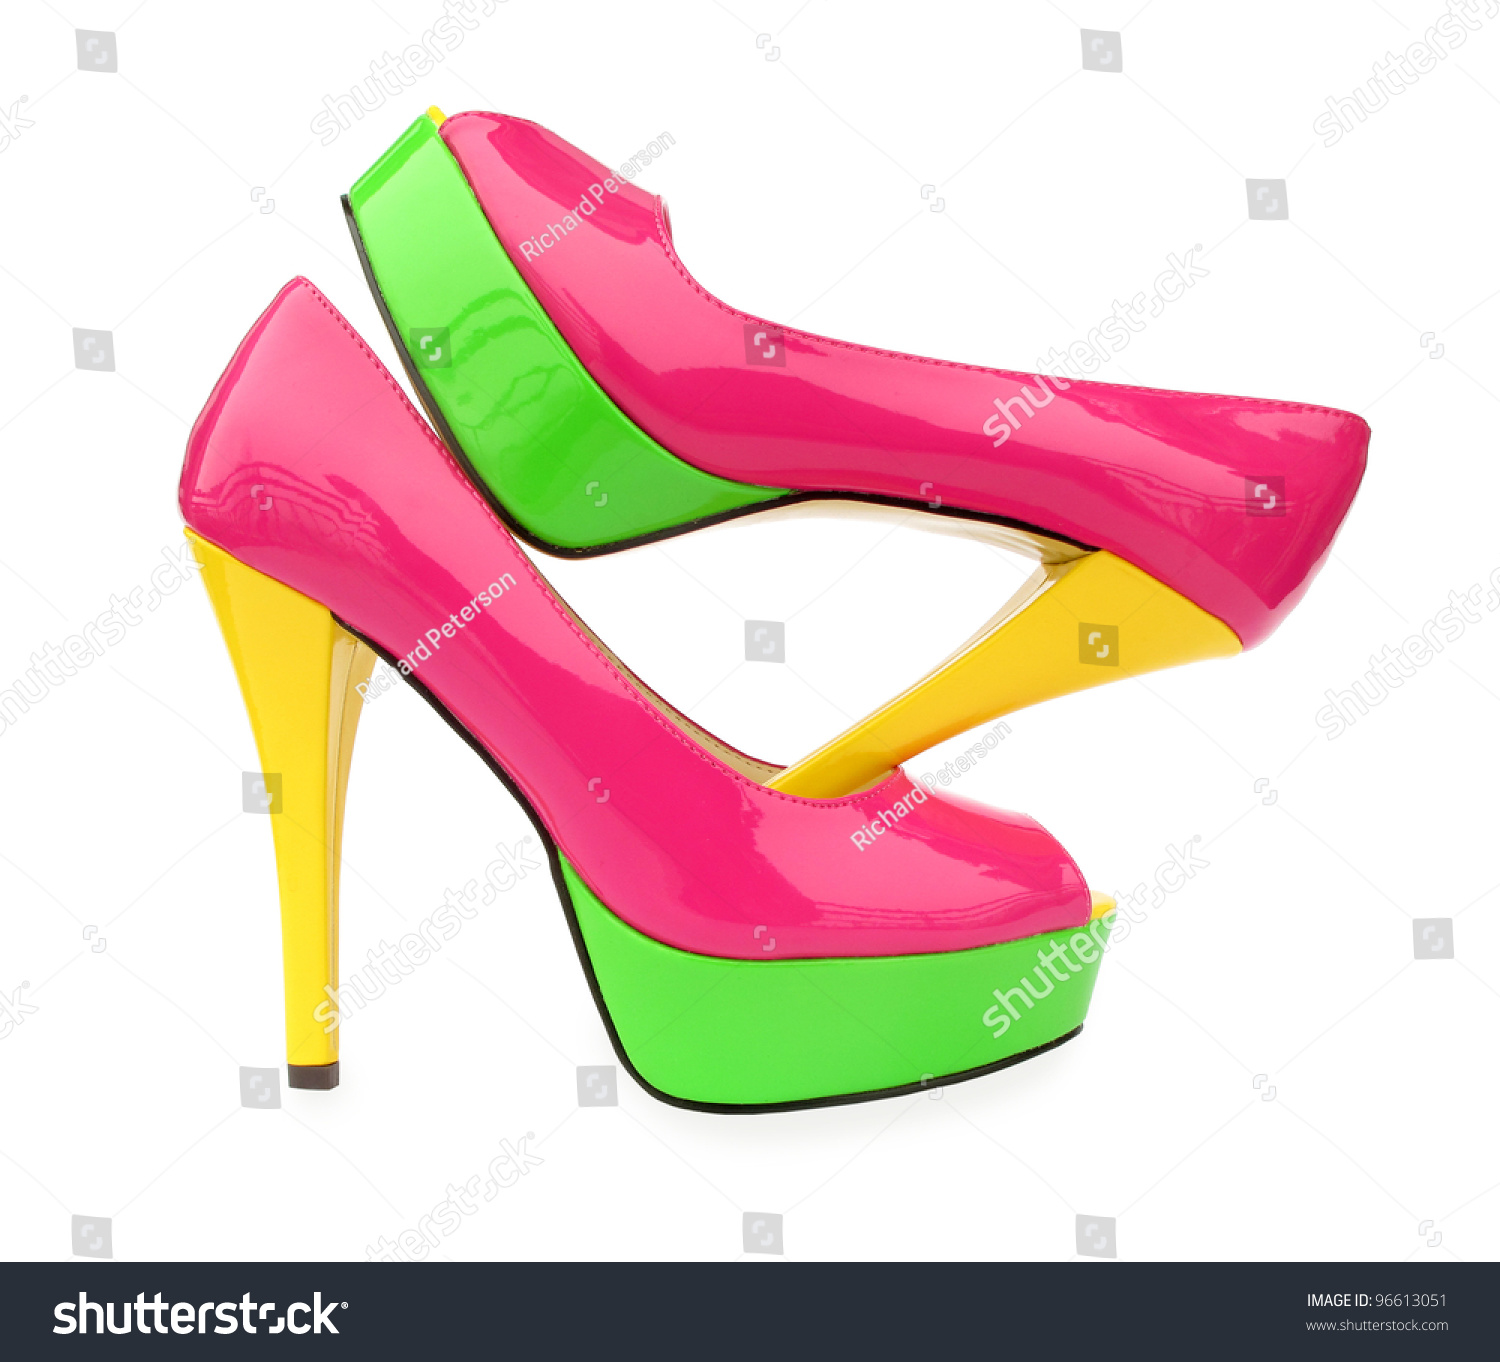 High Heels Yellow Shoes